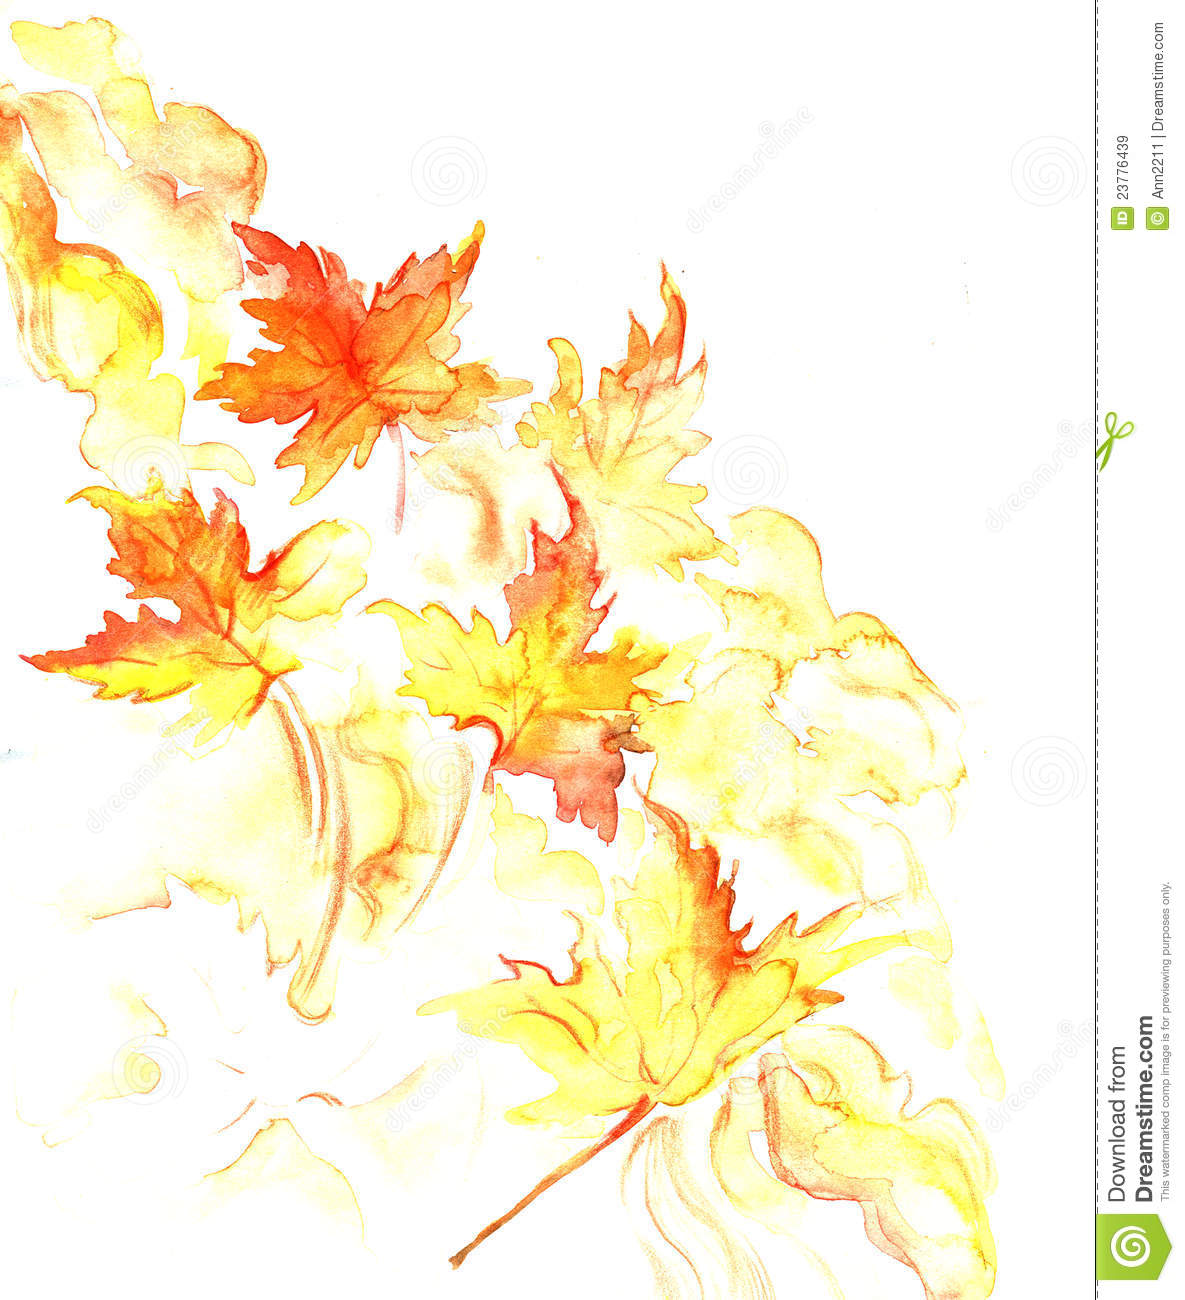 Iphone 6 Wallpaper Fall Leaves Fall Watercolor Background Stock Illustration